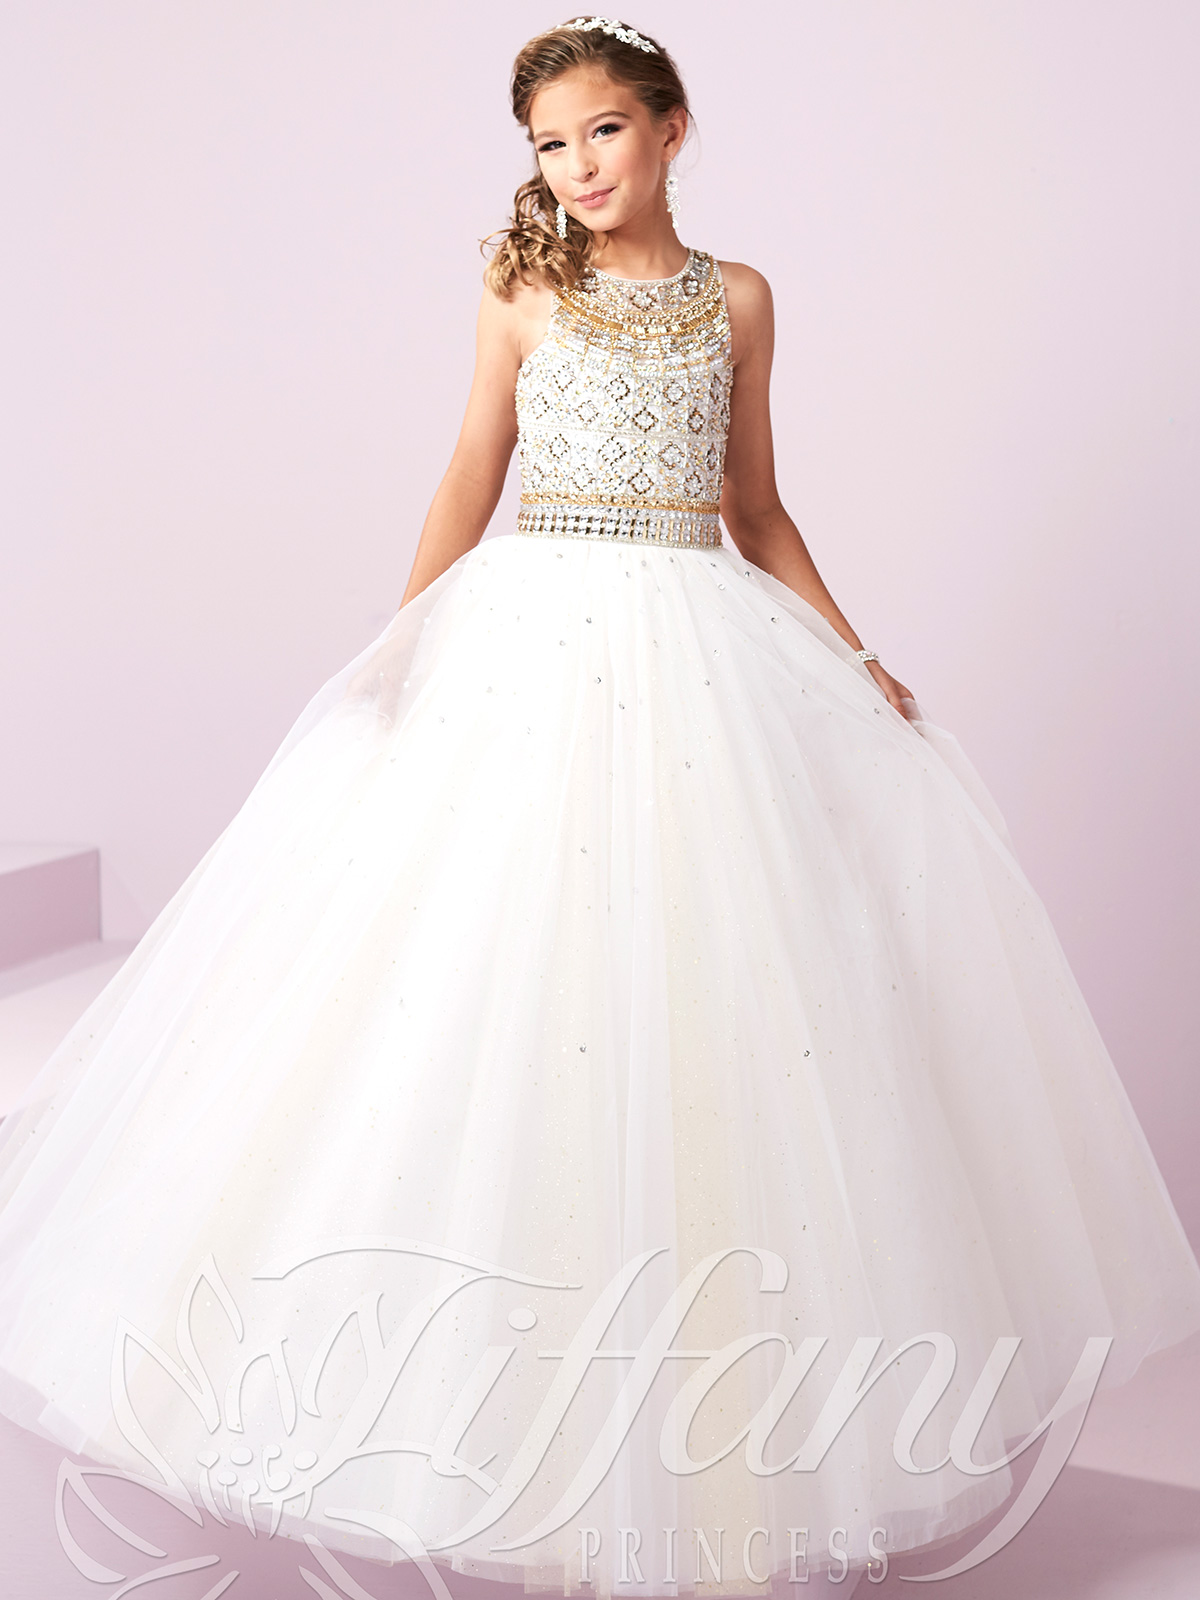 Tiffany Princess 13480 Beaded Bodice Pageant Gown ... - photo#12